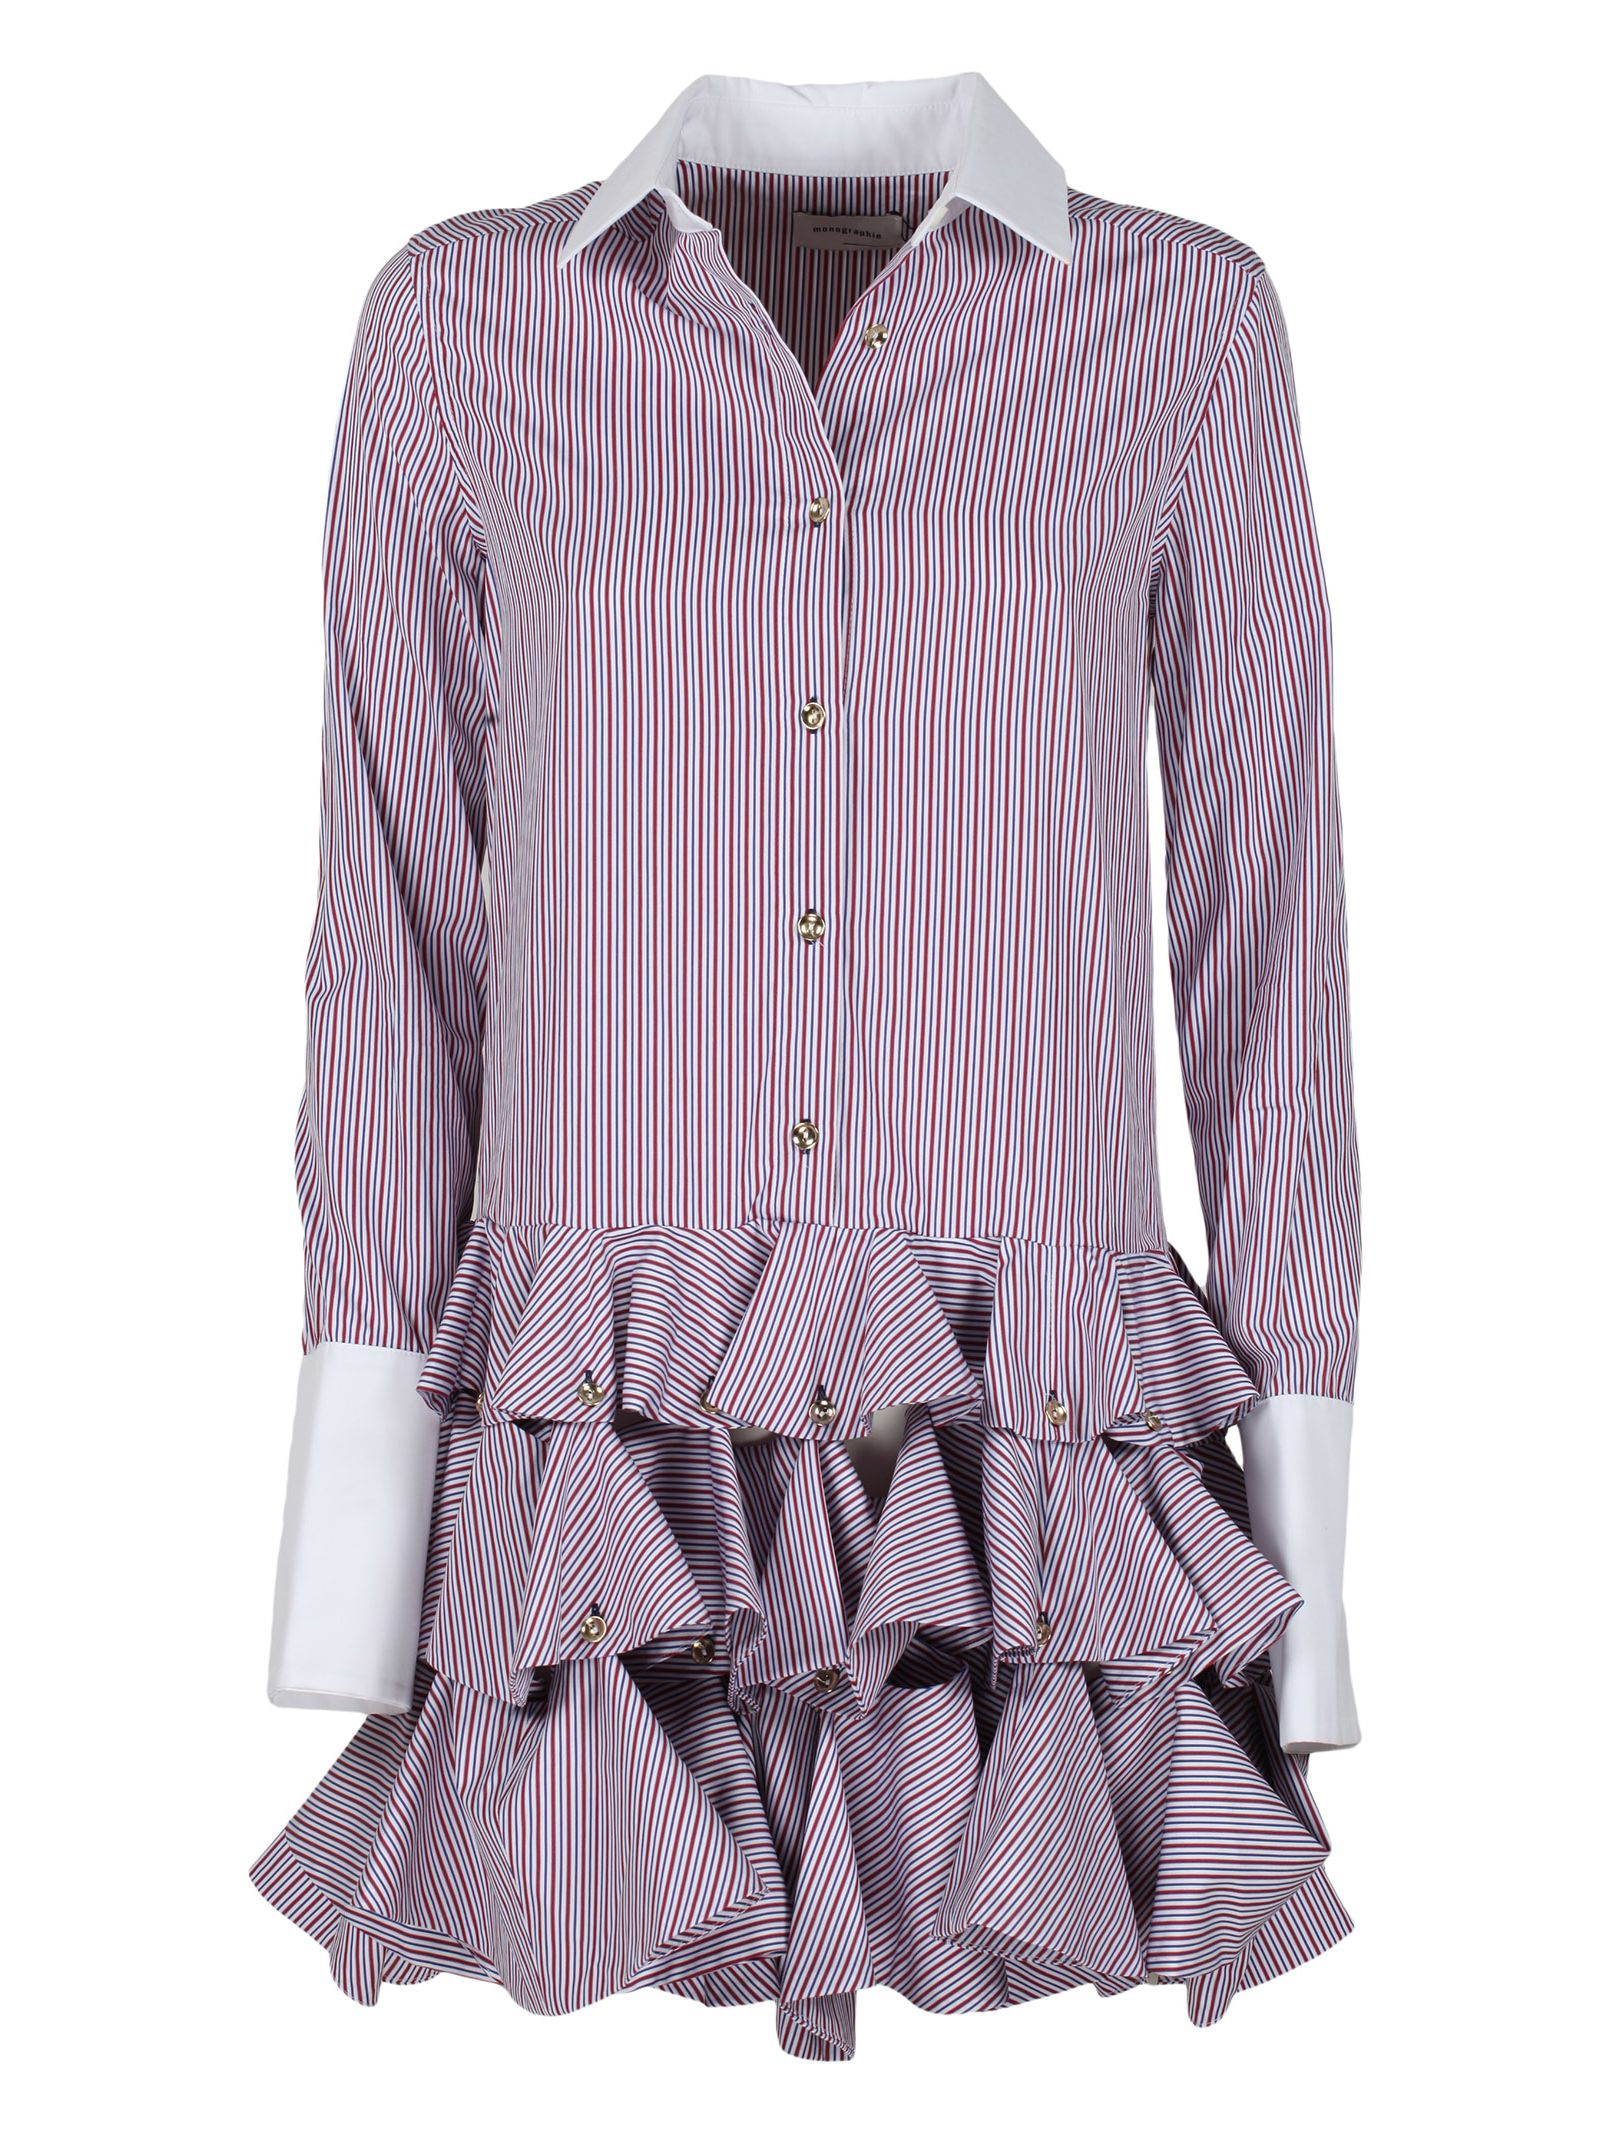 MONOGRAPHIE Ruffled Shirt in Red Blue White Stripes